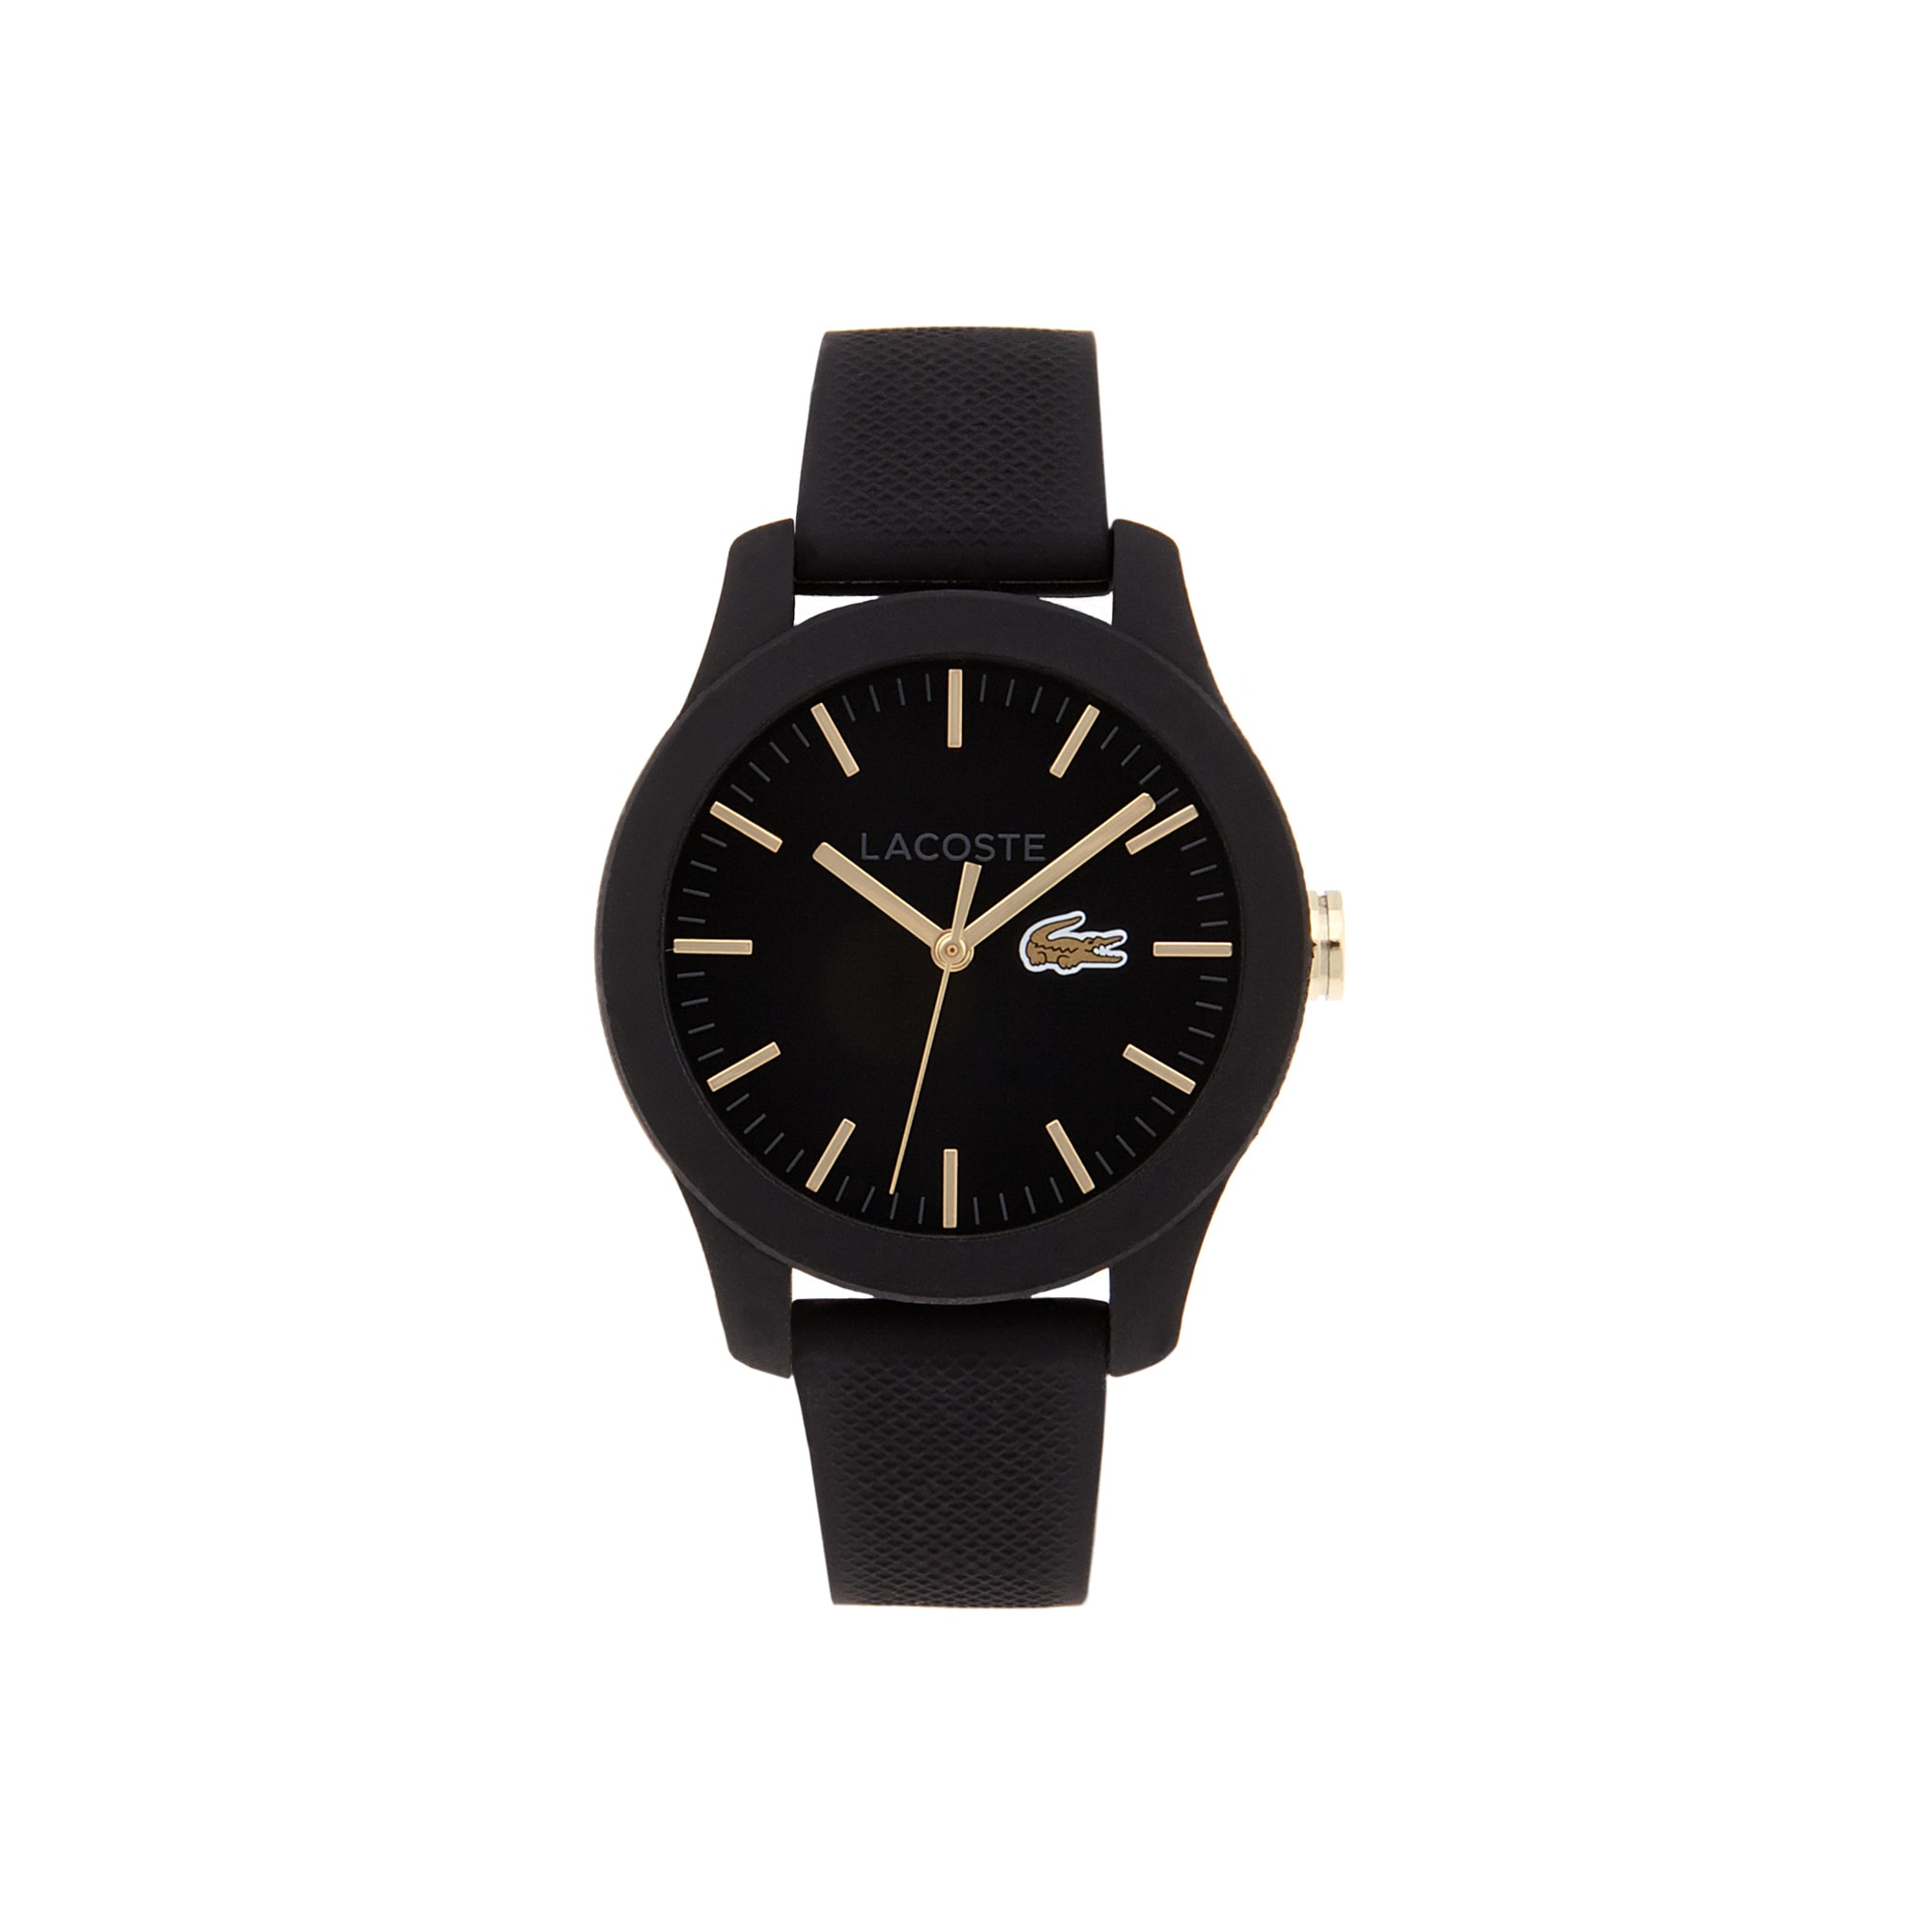 Men's Lacoste 12.12 Watch with Black Silicone Strap